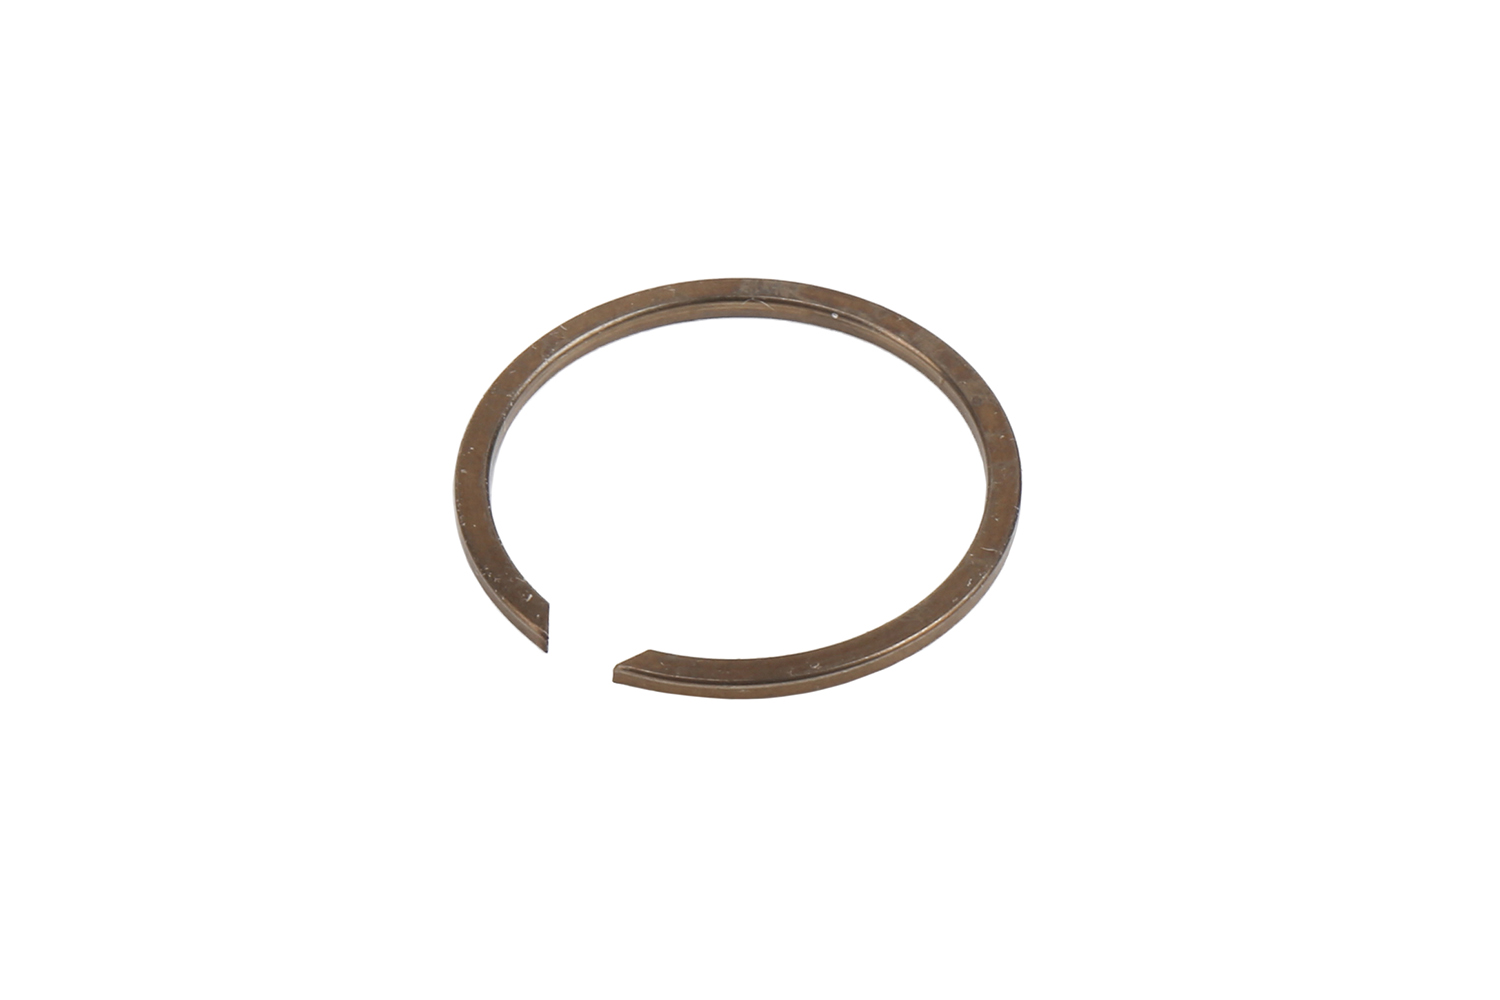 ACDELCO OE SERVICE CANADA - Turb Shaft Retainer Ring - DCG 24231268